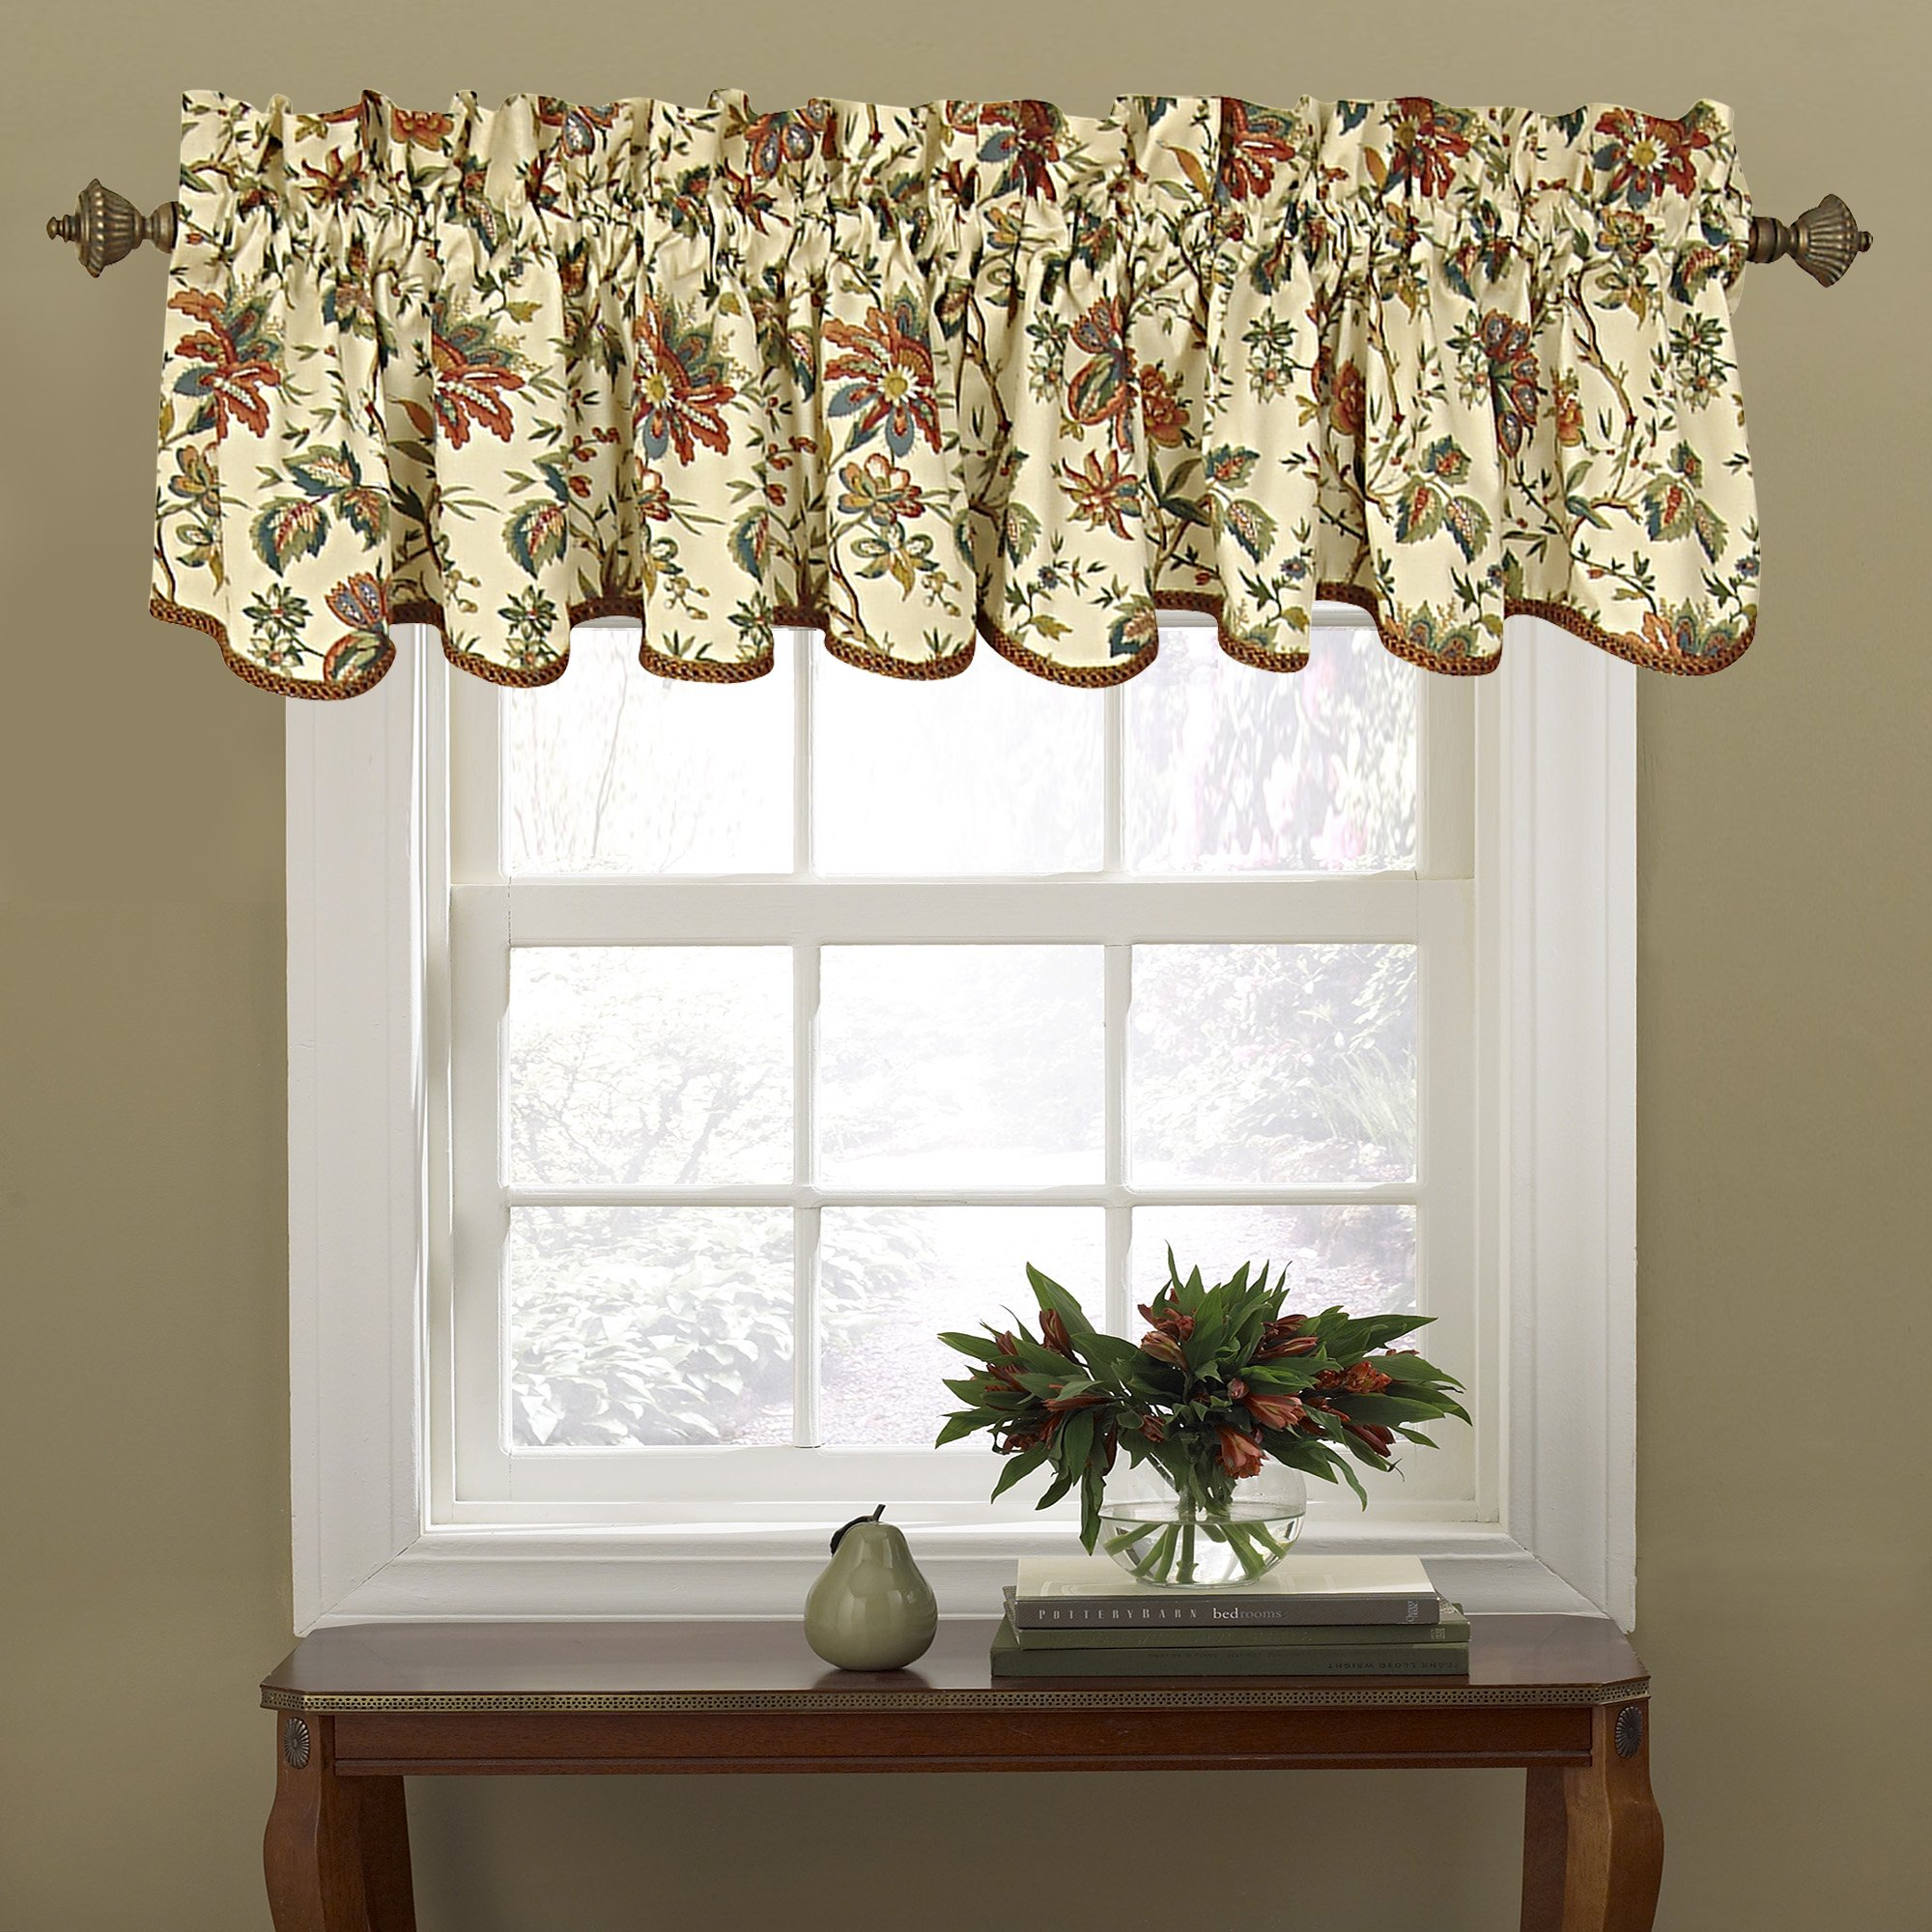 WAVERLY Valances for Windows - Felicite 50'' x 15'' Short Curtain Valance Small Window Curtains Bathroom, Living Room and Kitchens, Creme by WAVERLY